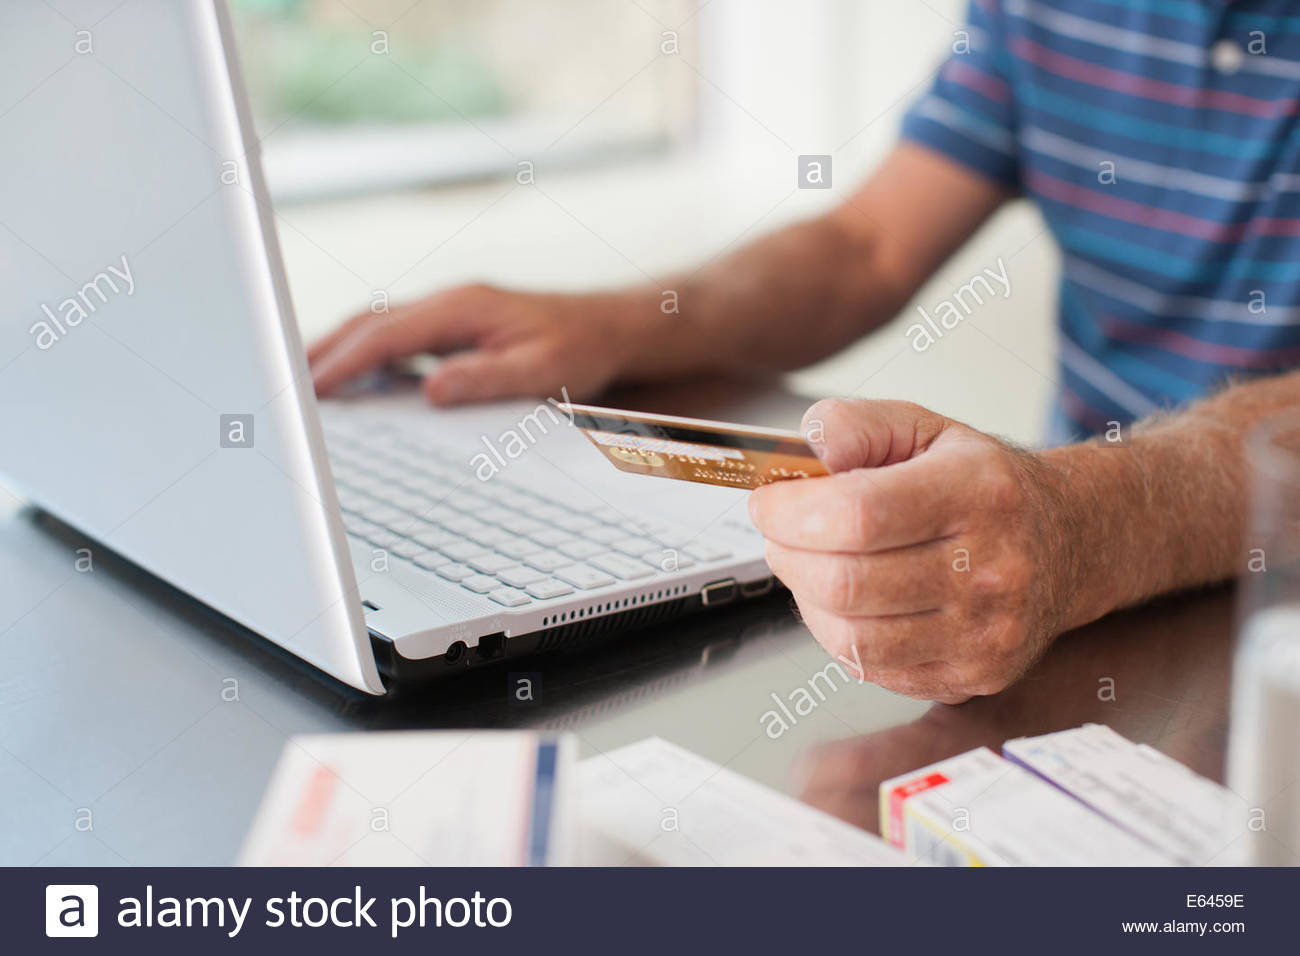 Close up of man using credit card to purchase merchandise online - Stock Image